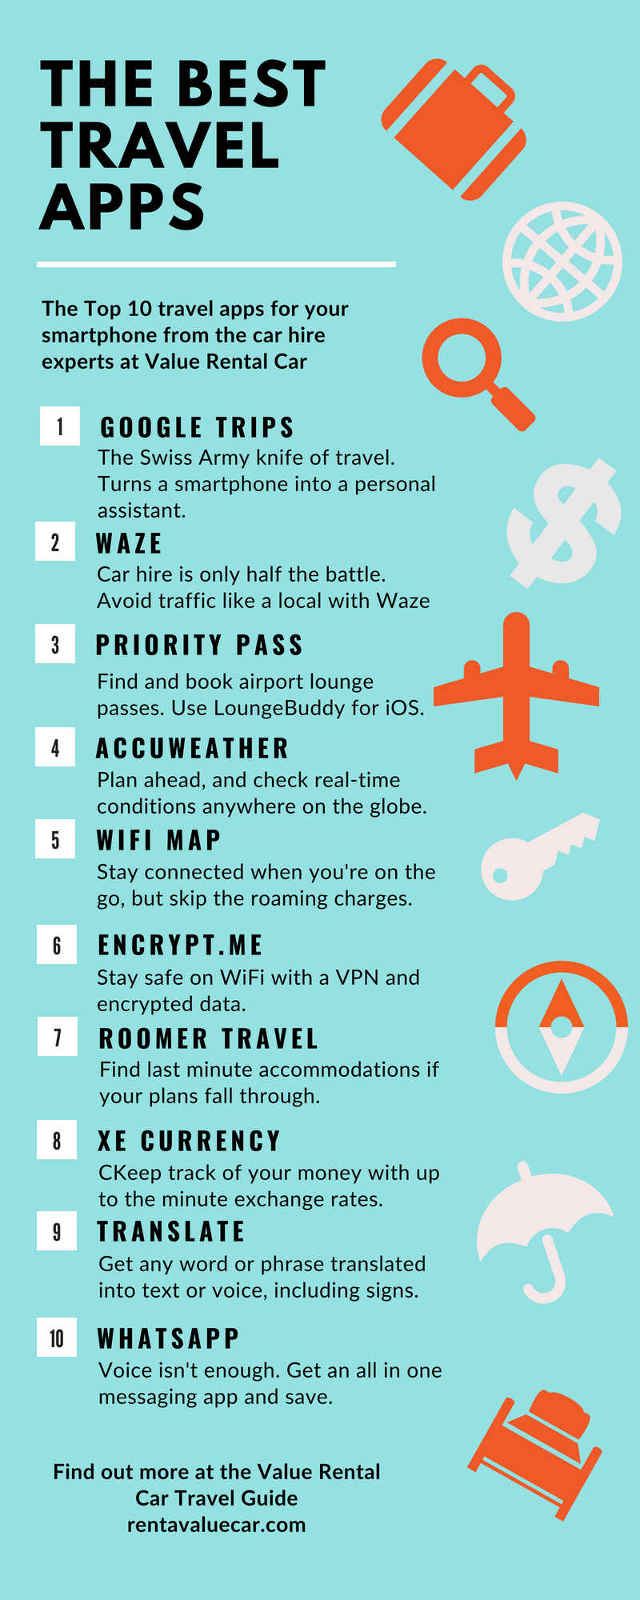 10 Best Travel Apps from car hire rentavaluecar.com